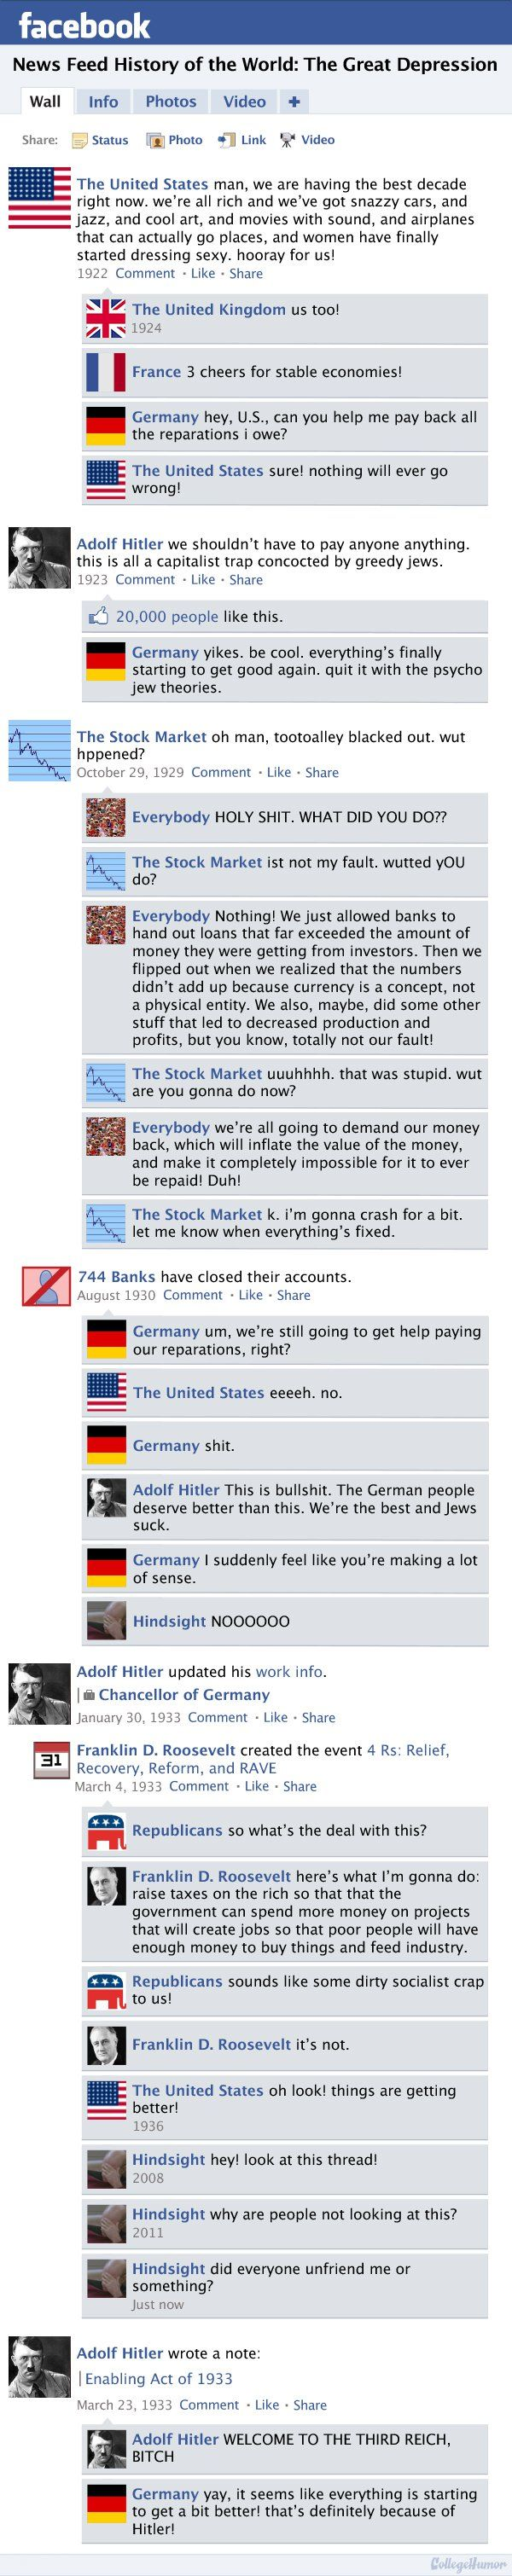 """Facebook News Feed History of the World: World War I to World War II"" by Susanna Wolff (Page 2) - CollegeHumor Article"